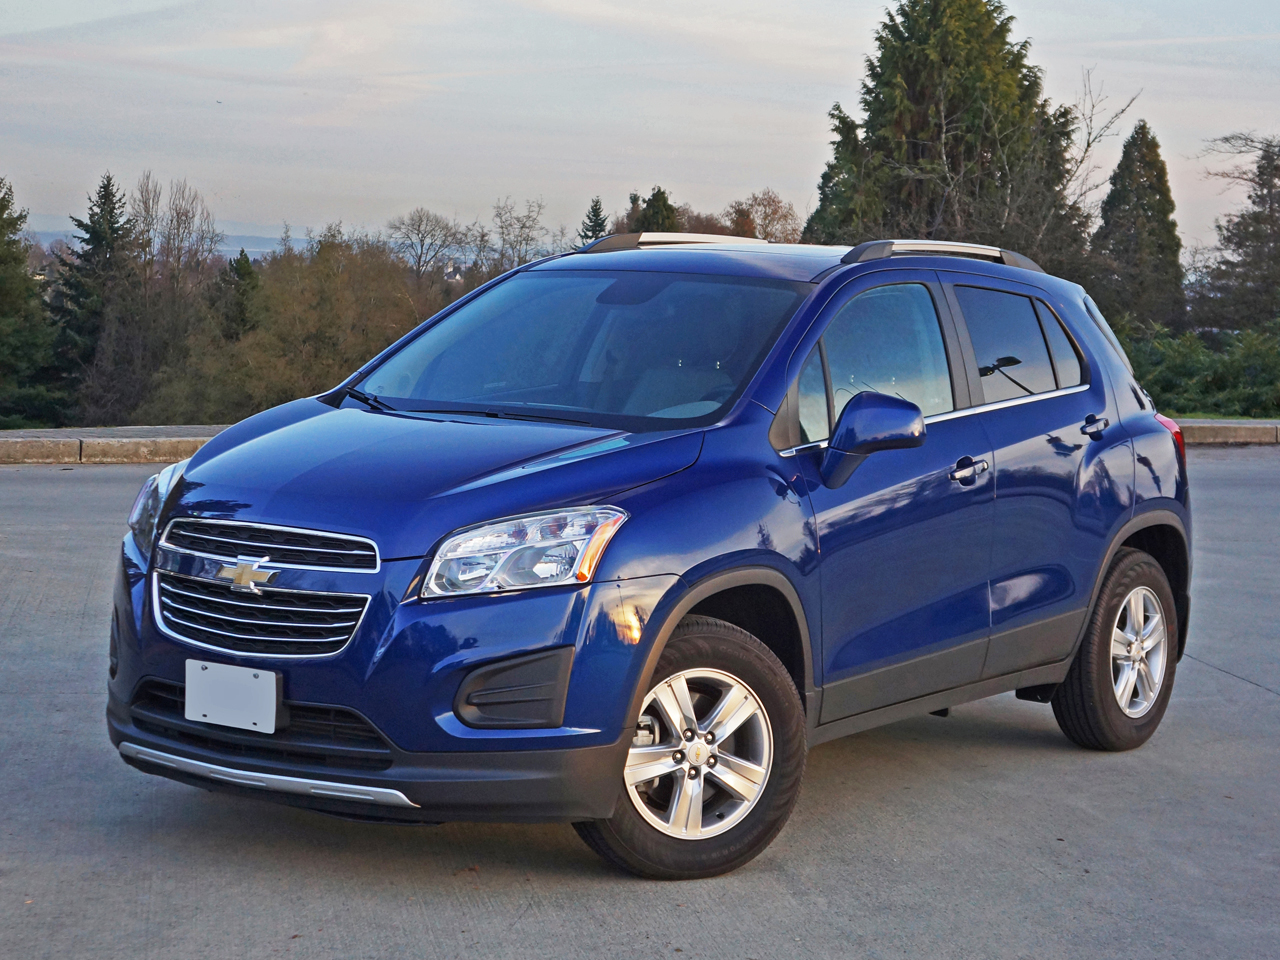 2016 Chevrolet Trax Lt Awd Road Test Review